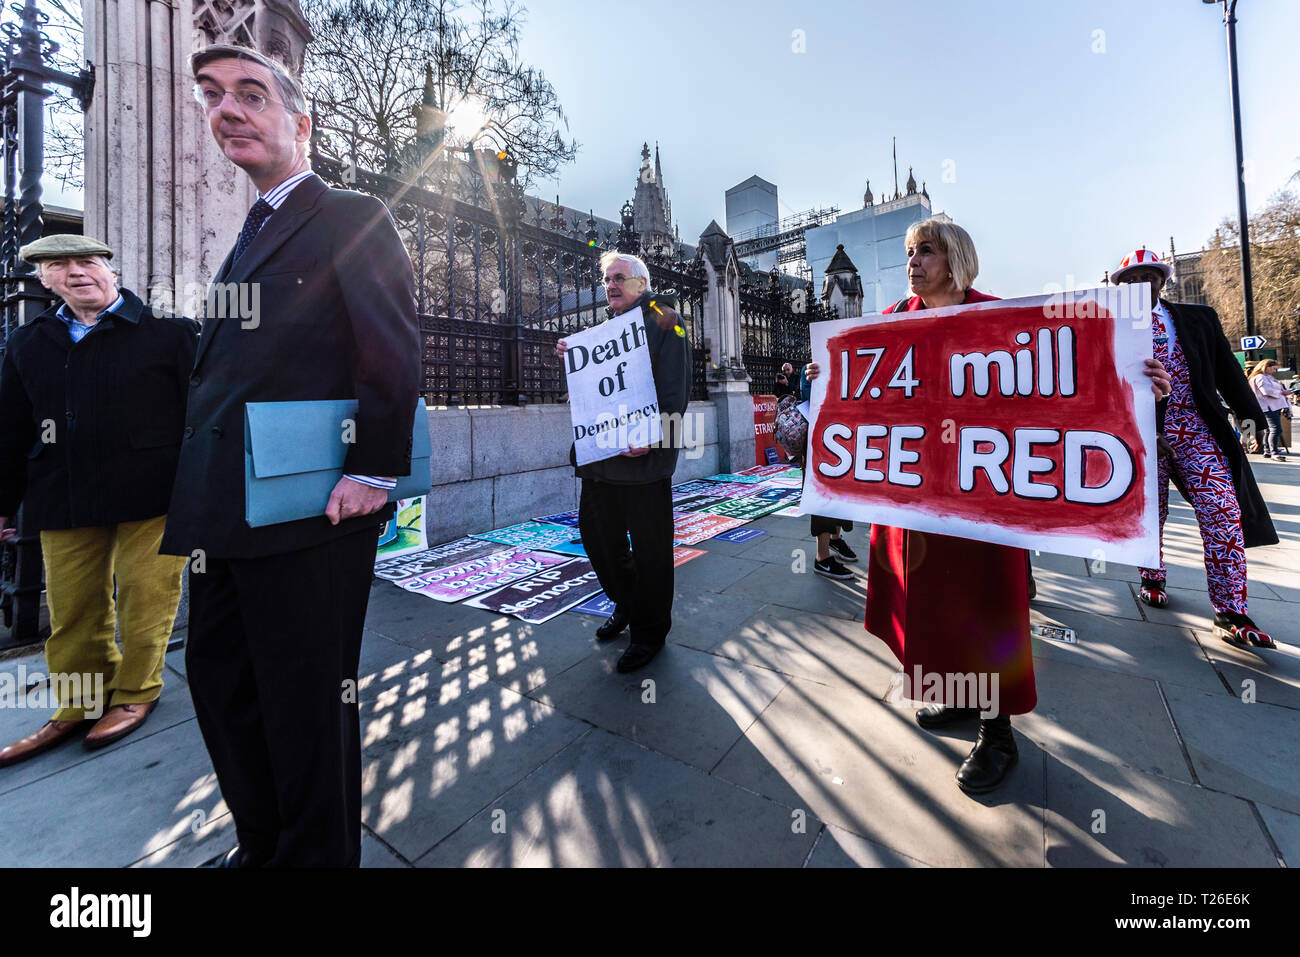 Conservative MP Jacob Rees-Mogg arriving at the Palace of Westminster, London, UK. 29th March 2019, the date that should have been Brexit. Protester Stock Photo